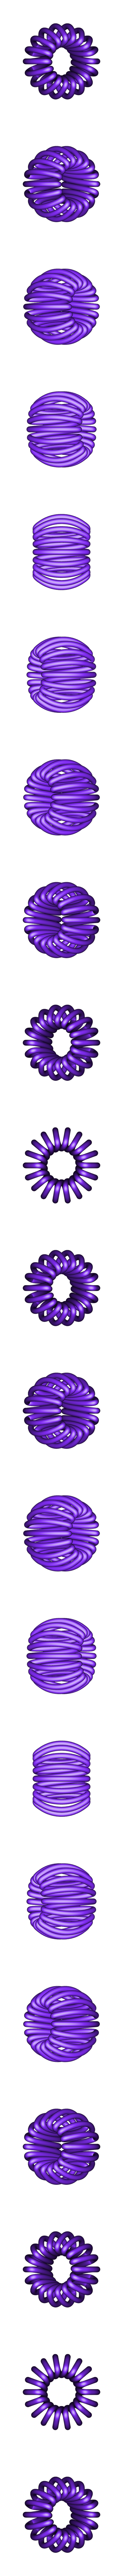 Coil_1.stl Download free STL file Coil thing • 3D printer model, llaffa